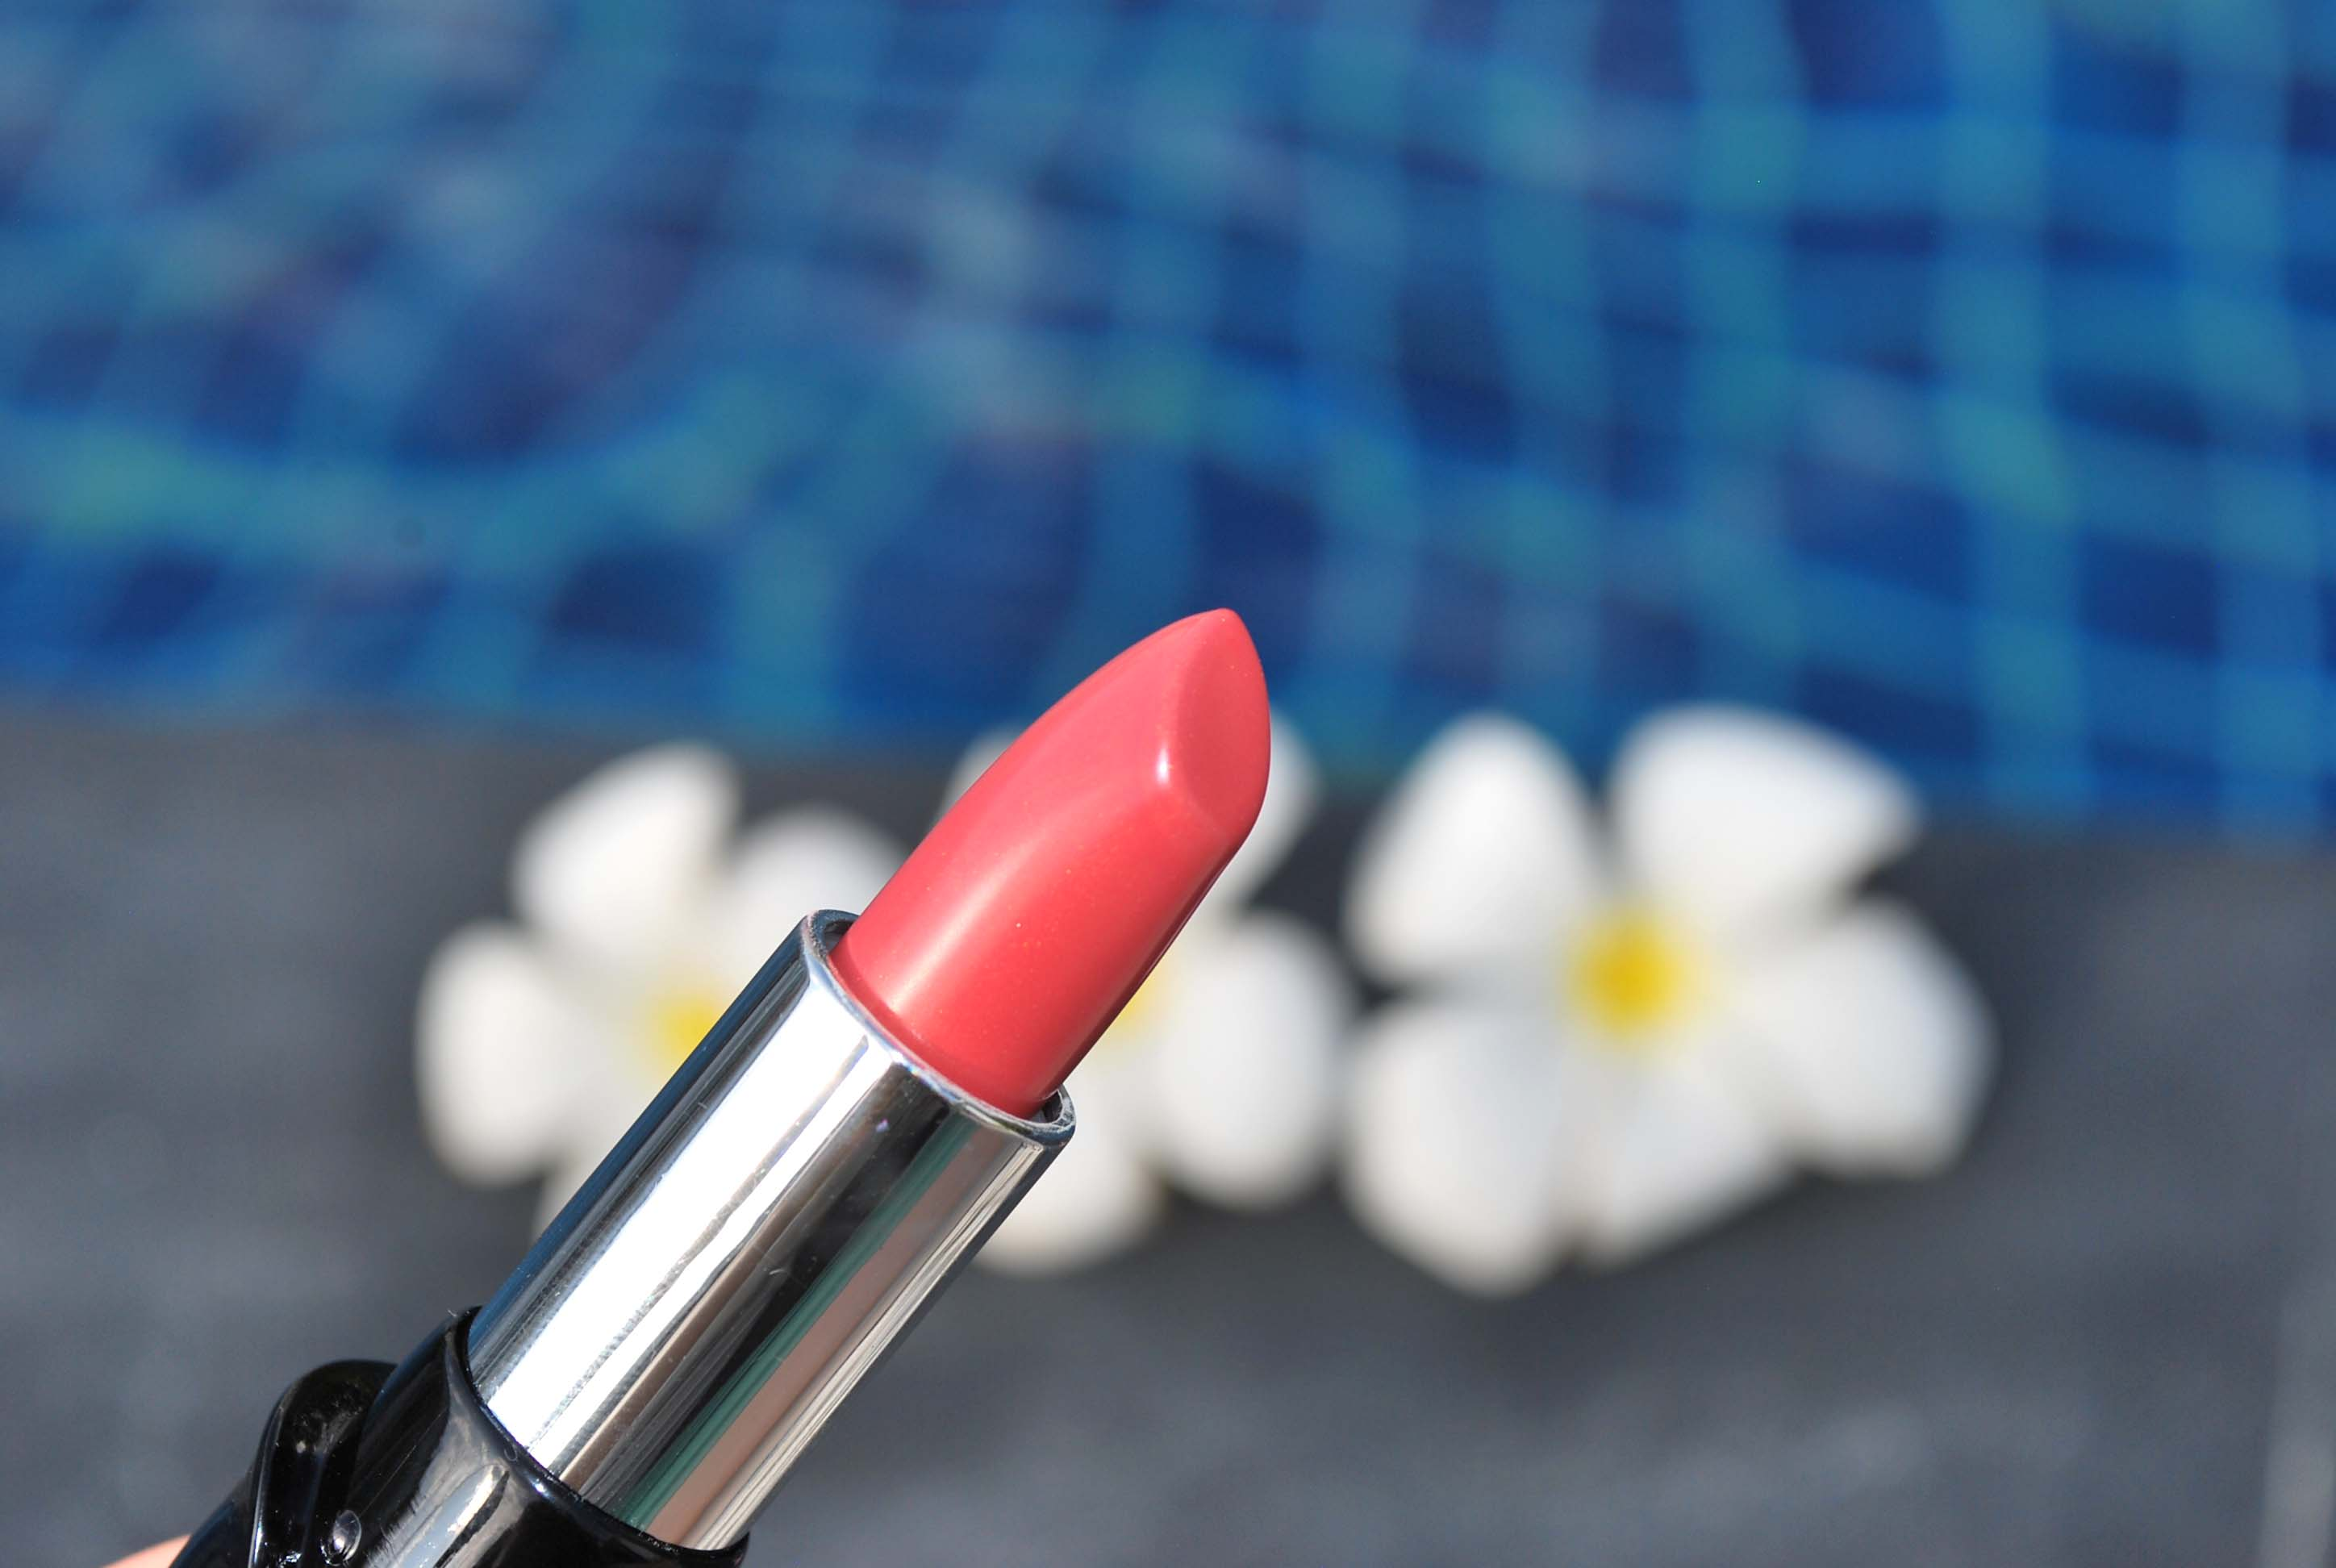 Coral mat lipstick luv potion bewitch review